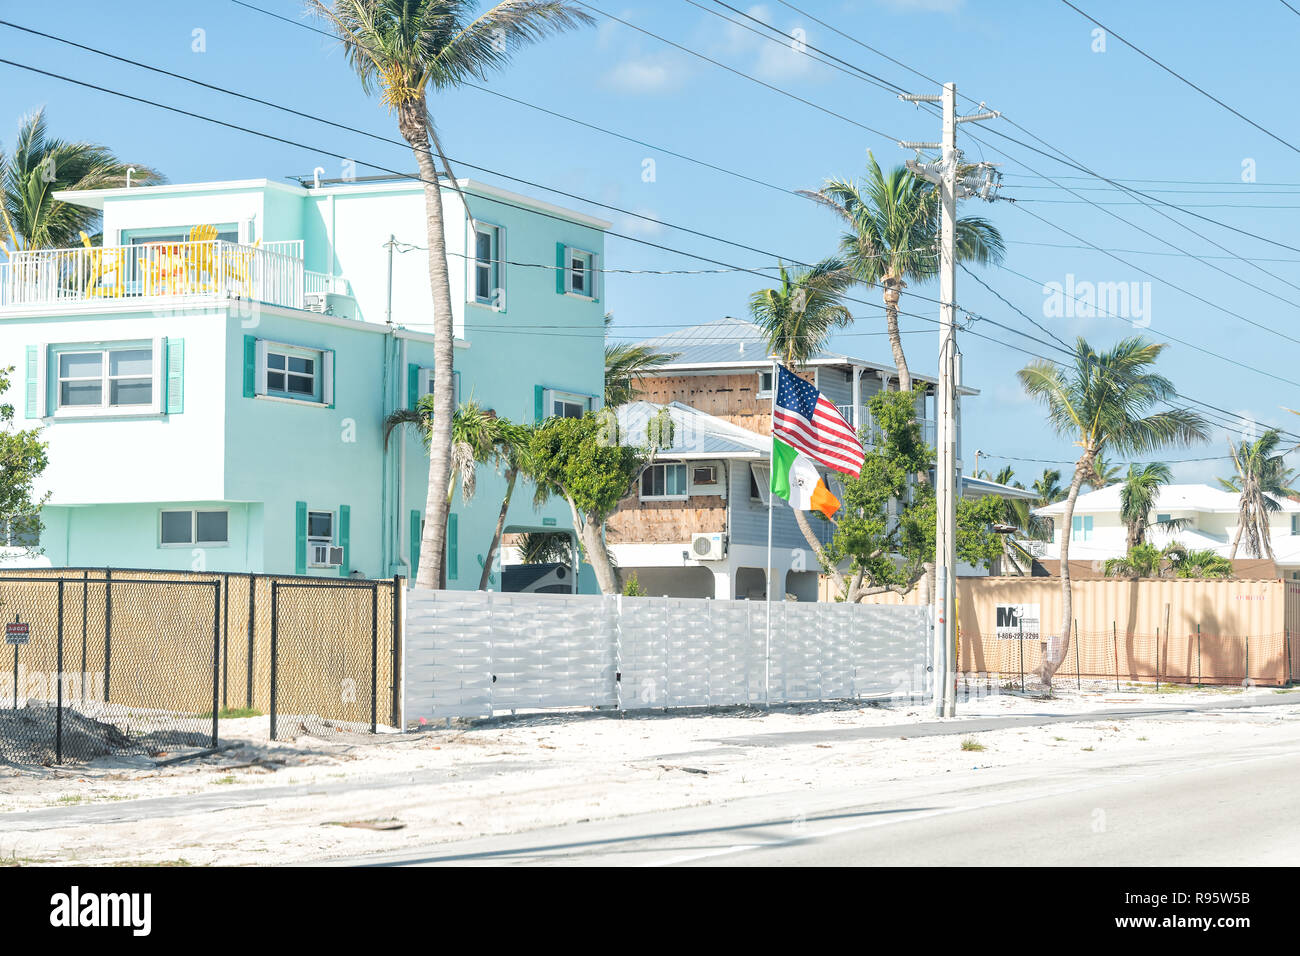 Long Key, USA - May 1, 2018: Turquoise, teal, blue beach vacation houses, homes with palm trees in Florida at overseas highway road, street, American  - Stock Image